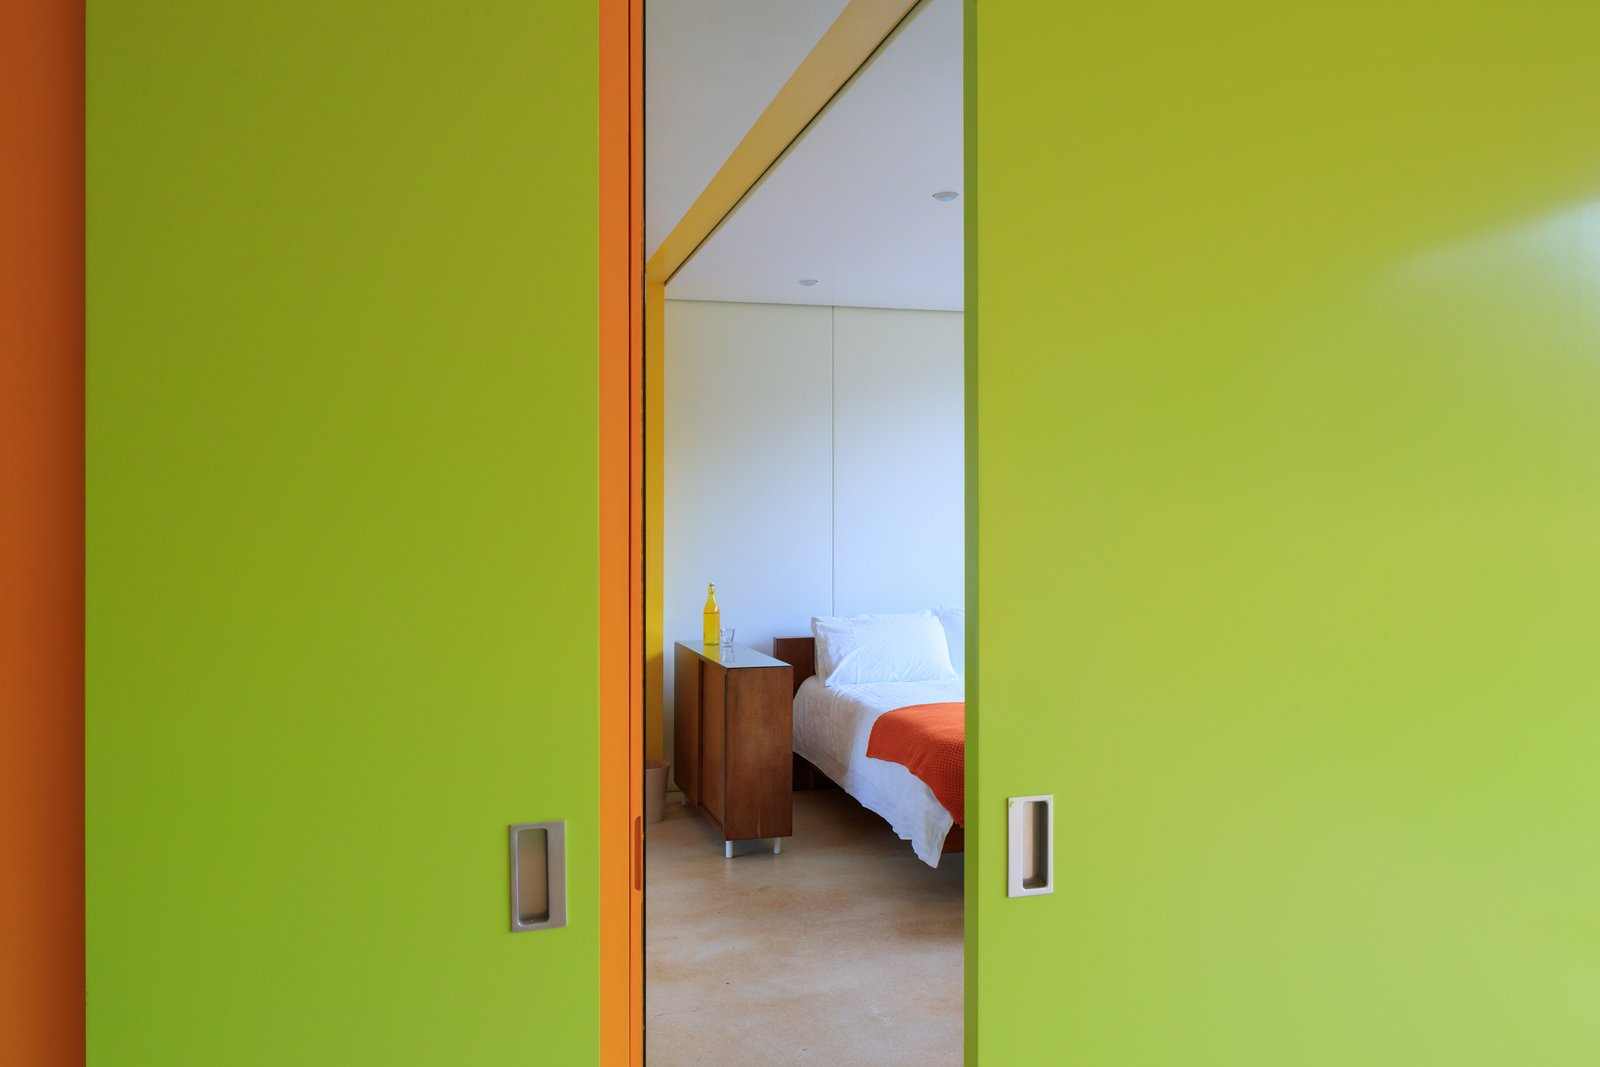 Bedroom  Photo 8 of 14 in Fully Renovated, Wimbledon House by Richard Rogers Hosts New Architecture Fellows in London